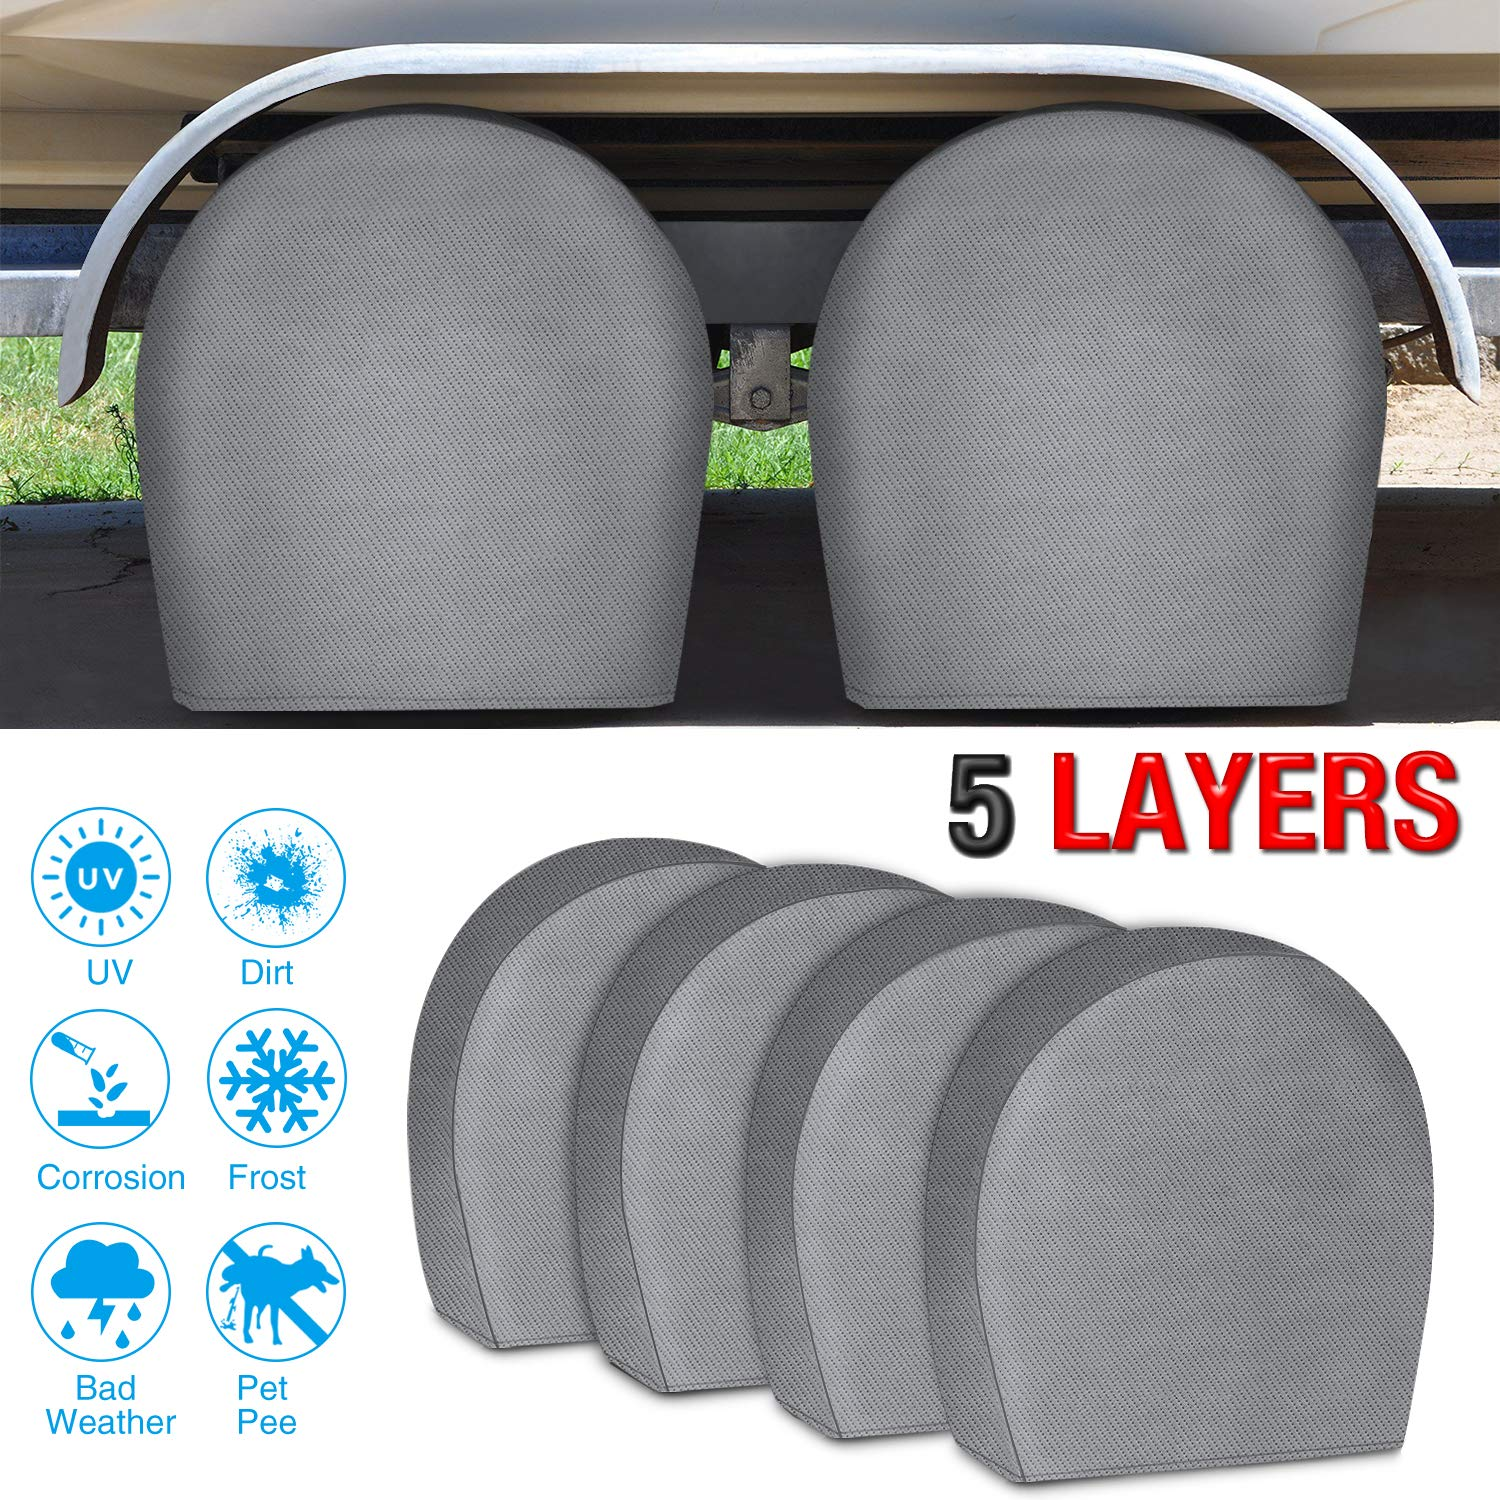 RVMasking Tire Covers for RV Wheel Set of 4 Extra Thick 5-ply Motorhome Wheel Covers, Waterproof UV Coating Tire Protectors for Trailer Truck Camper Auto, Fits 24'' - 26.5'' Tire Diameters